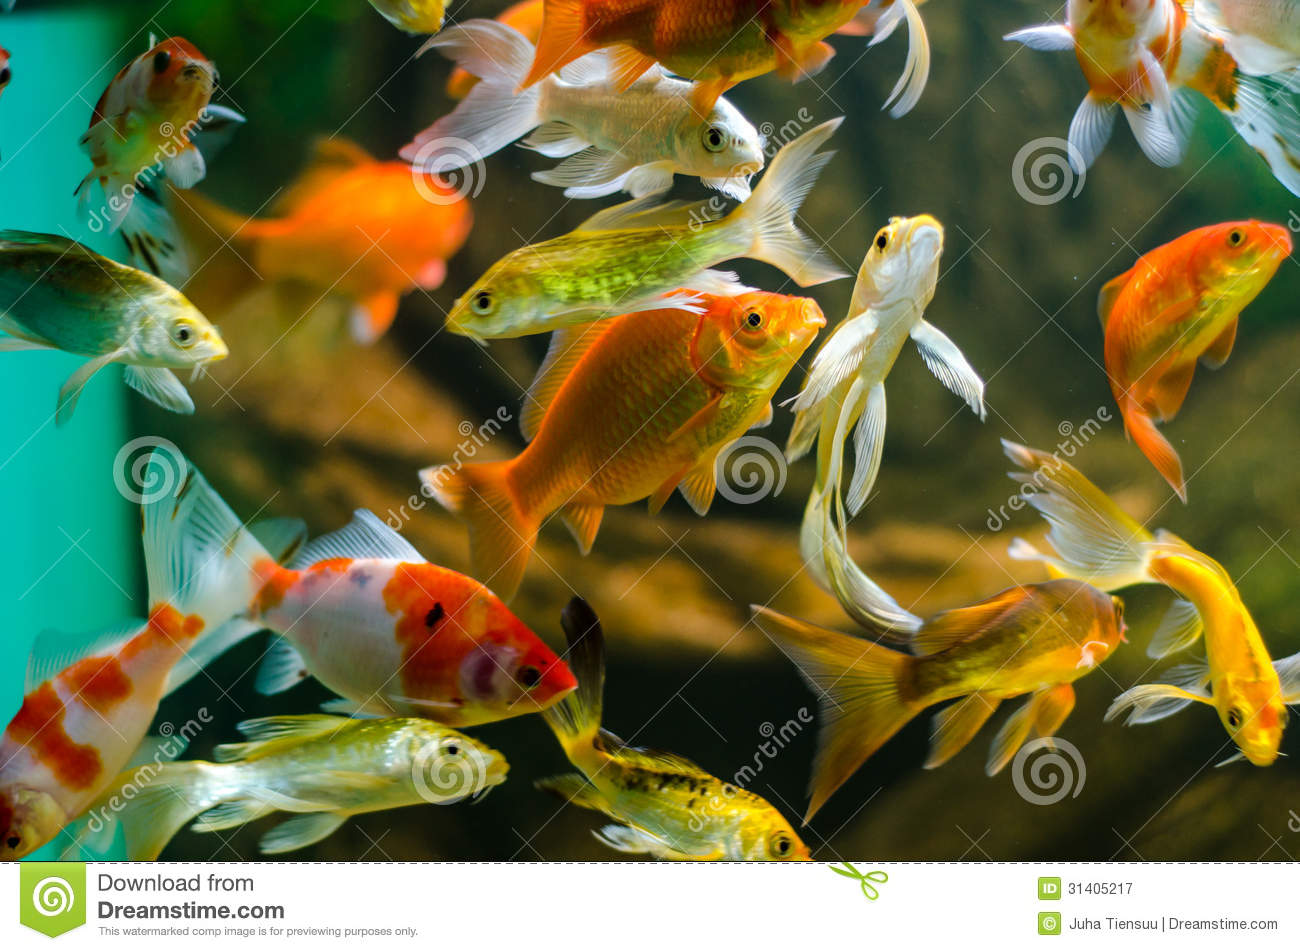 Koi and carp in aquarium stock image image of fish japan for Koi fish tank